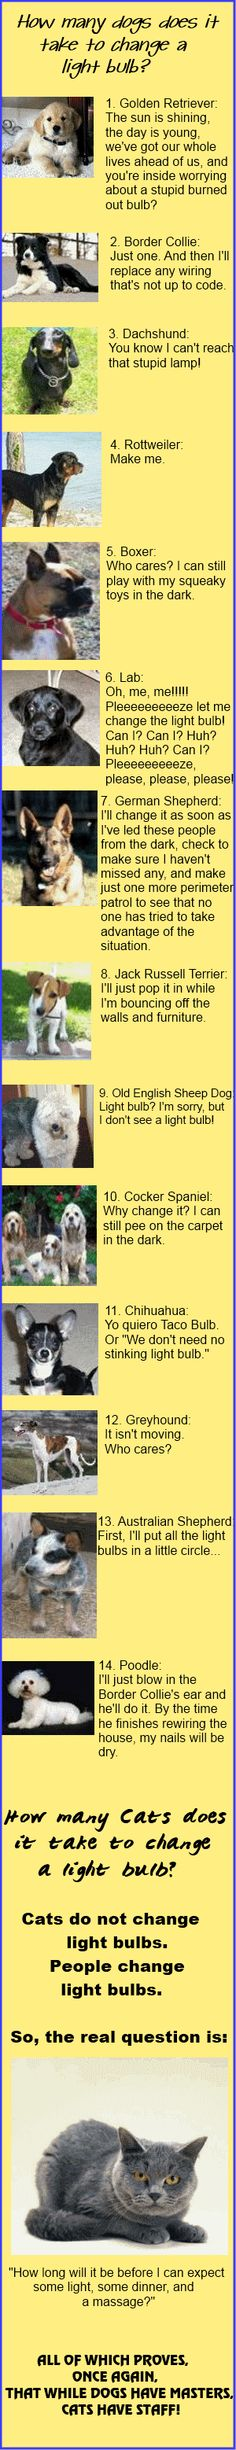 How many dogs does it take to change a light bulb?